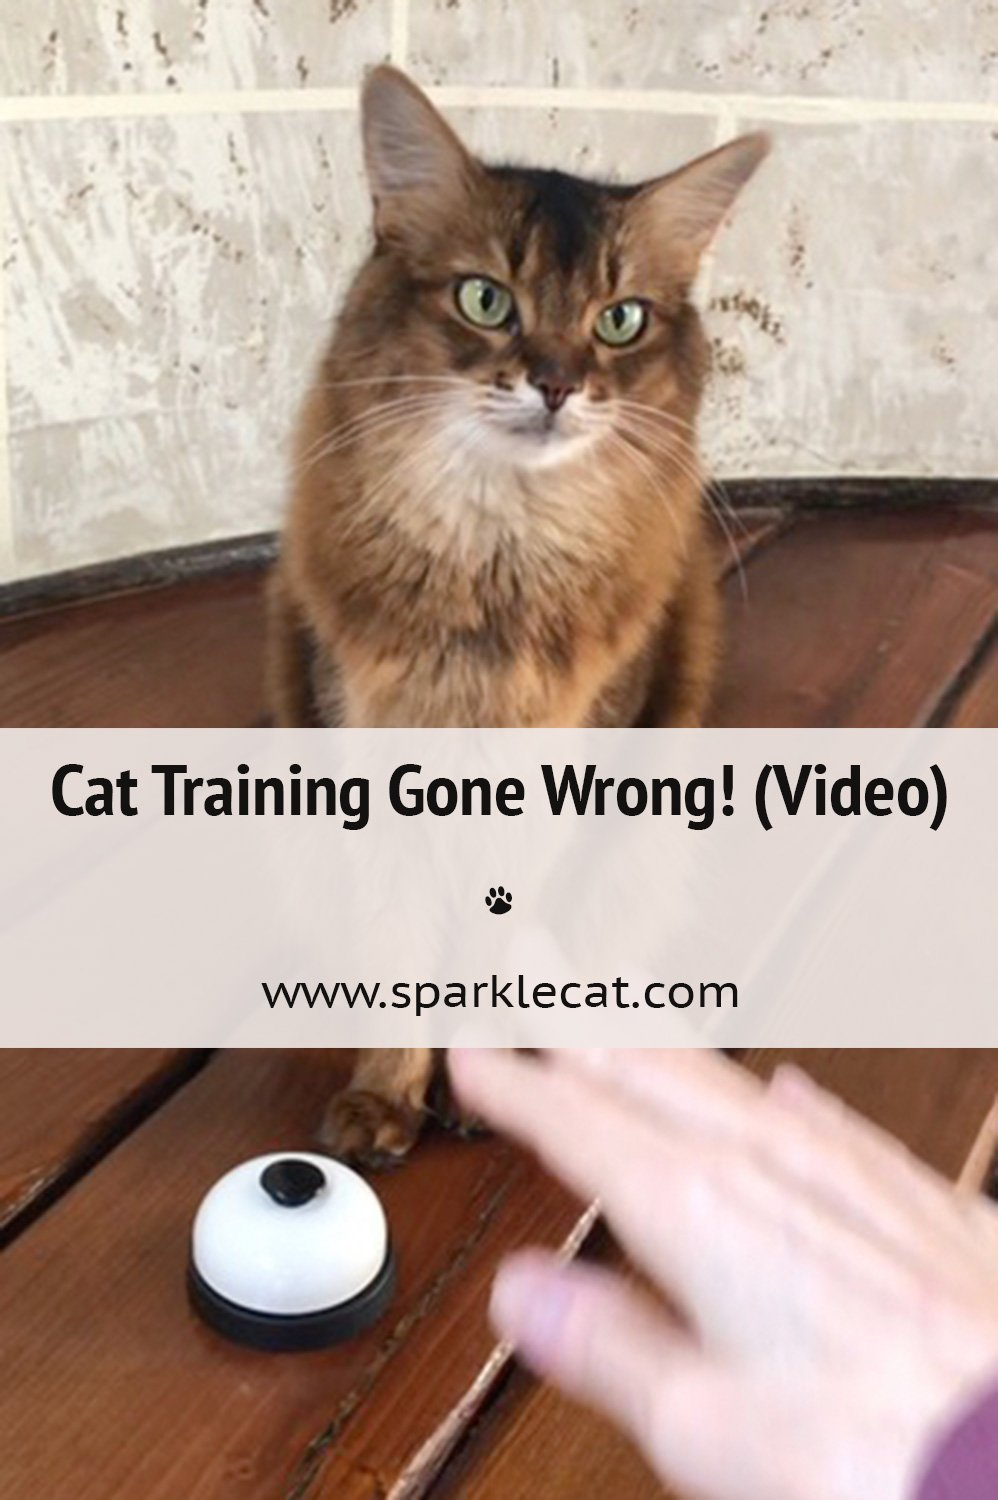 I Forgot How to Ring a Bell! (Video)